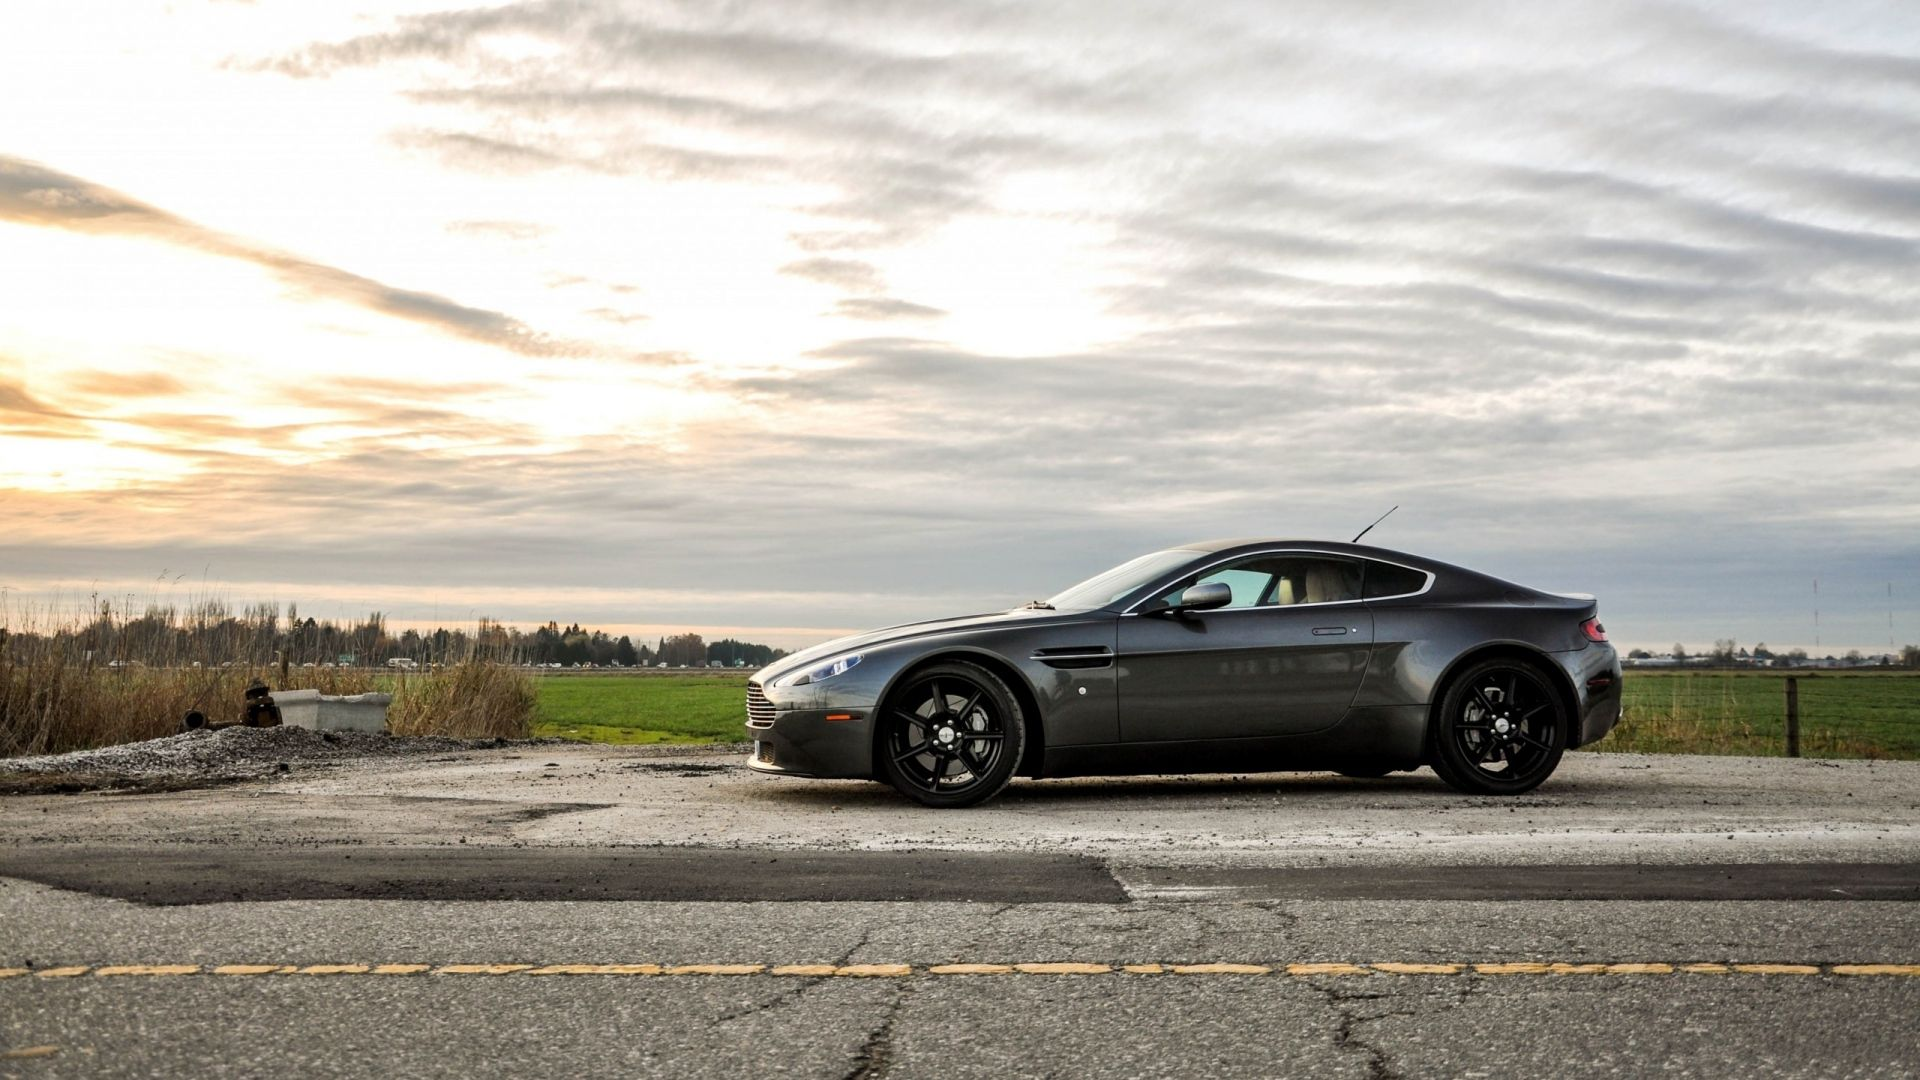 Download Wallpapers 1920x1080 Aston martin, V8, Vantage, Cars